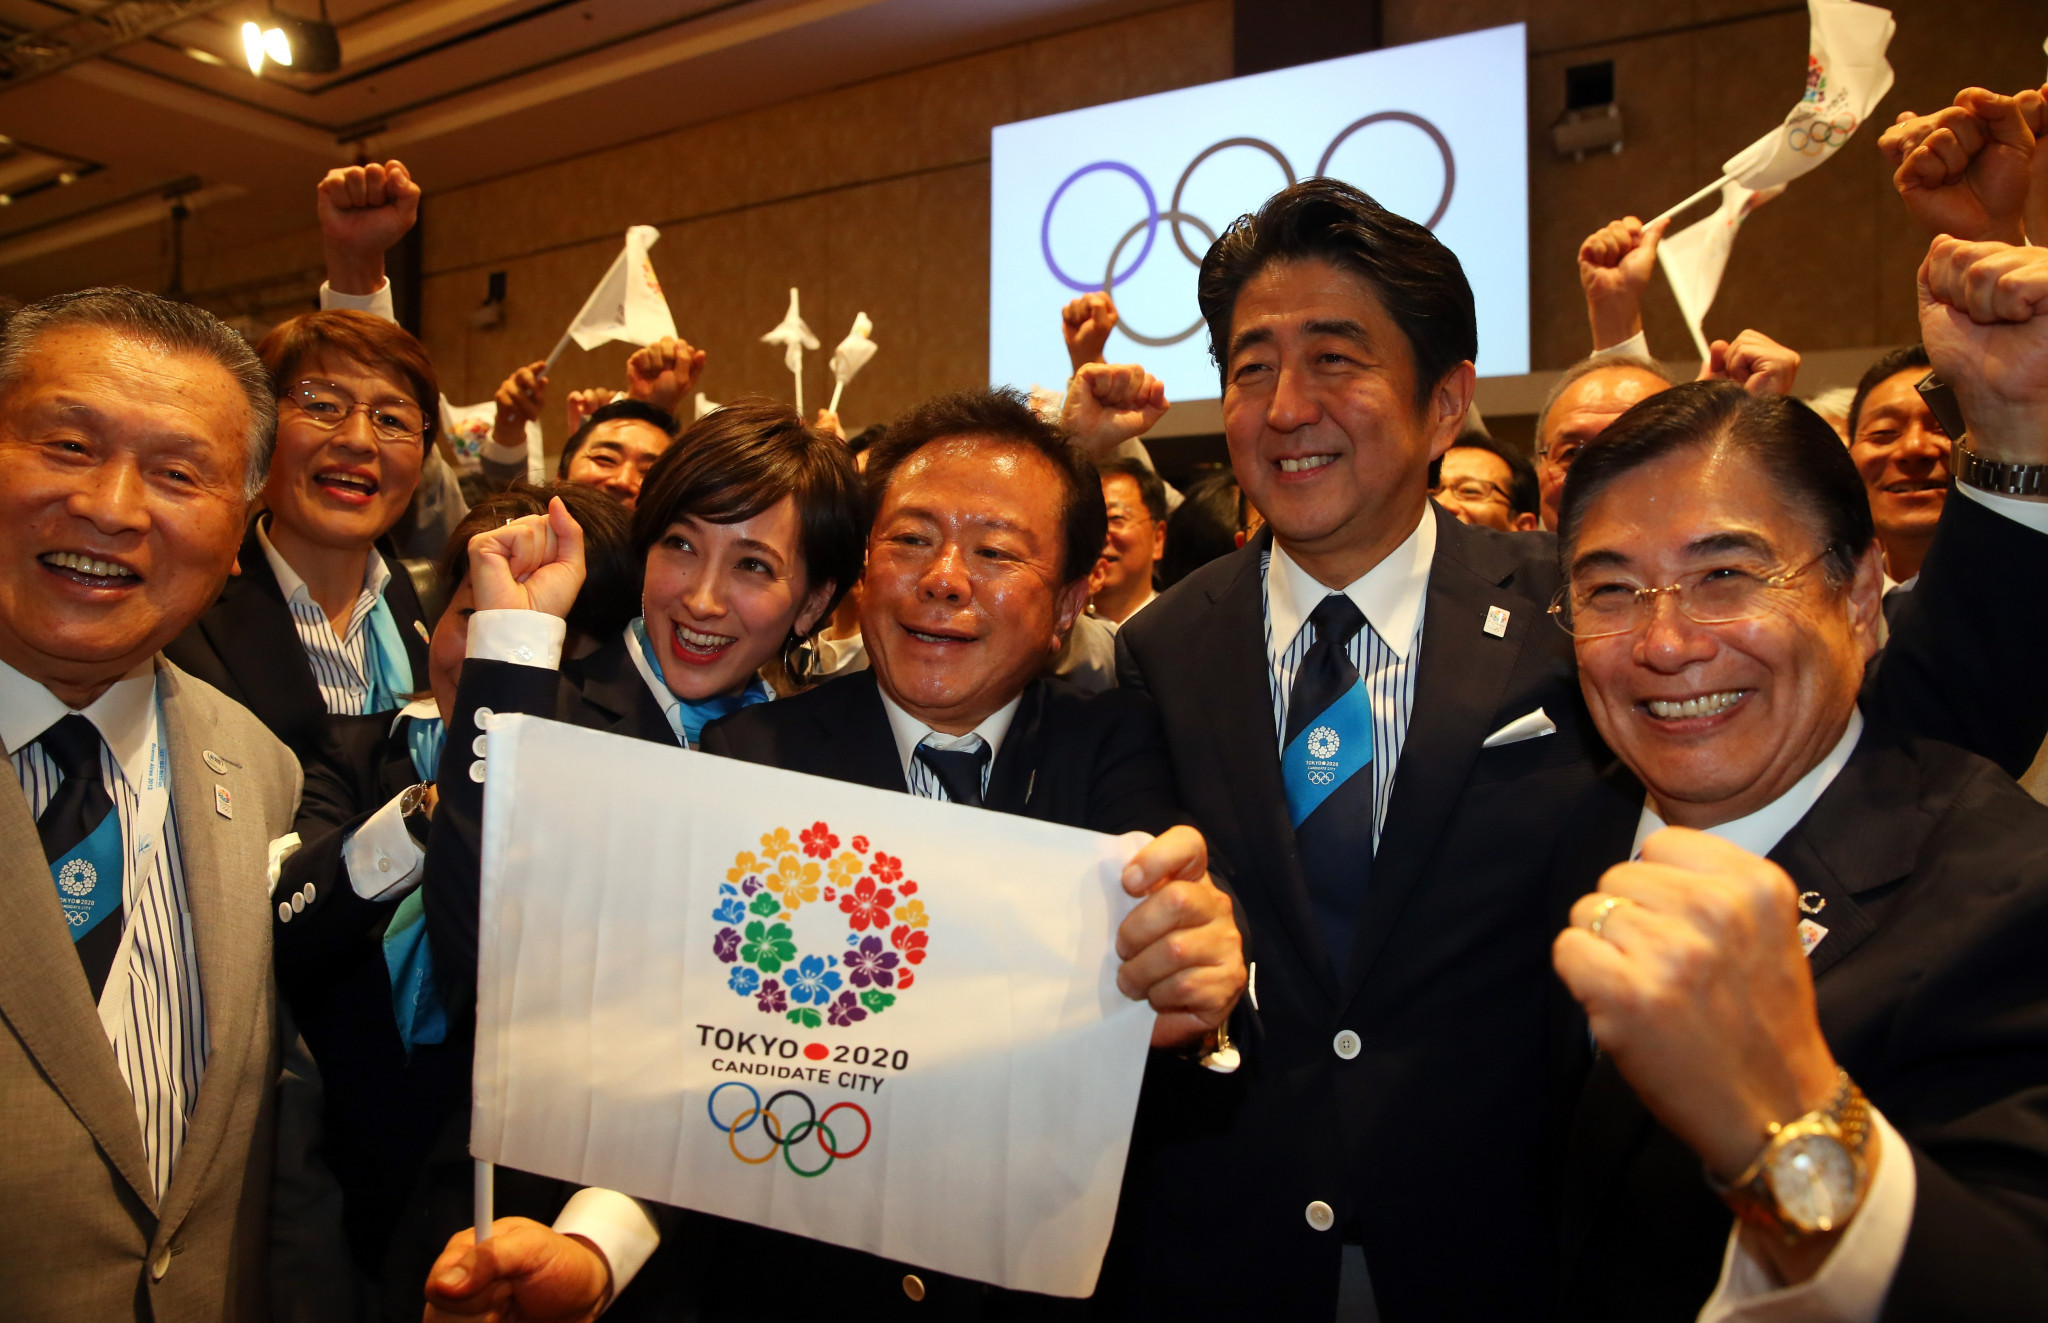 Tokyo was named as host of the 2020 Olympic and Paralympic Games at the 2013 IOC Session in Buenos Aires ©Getty Images